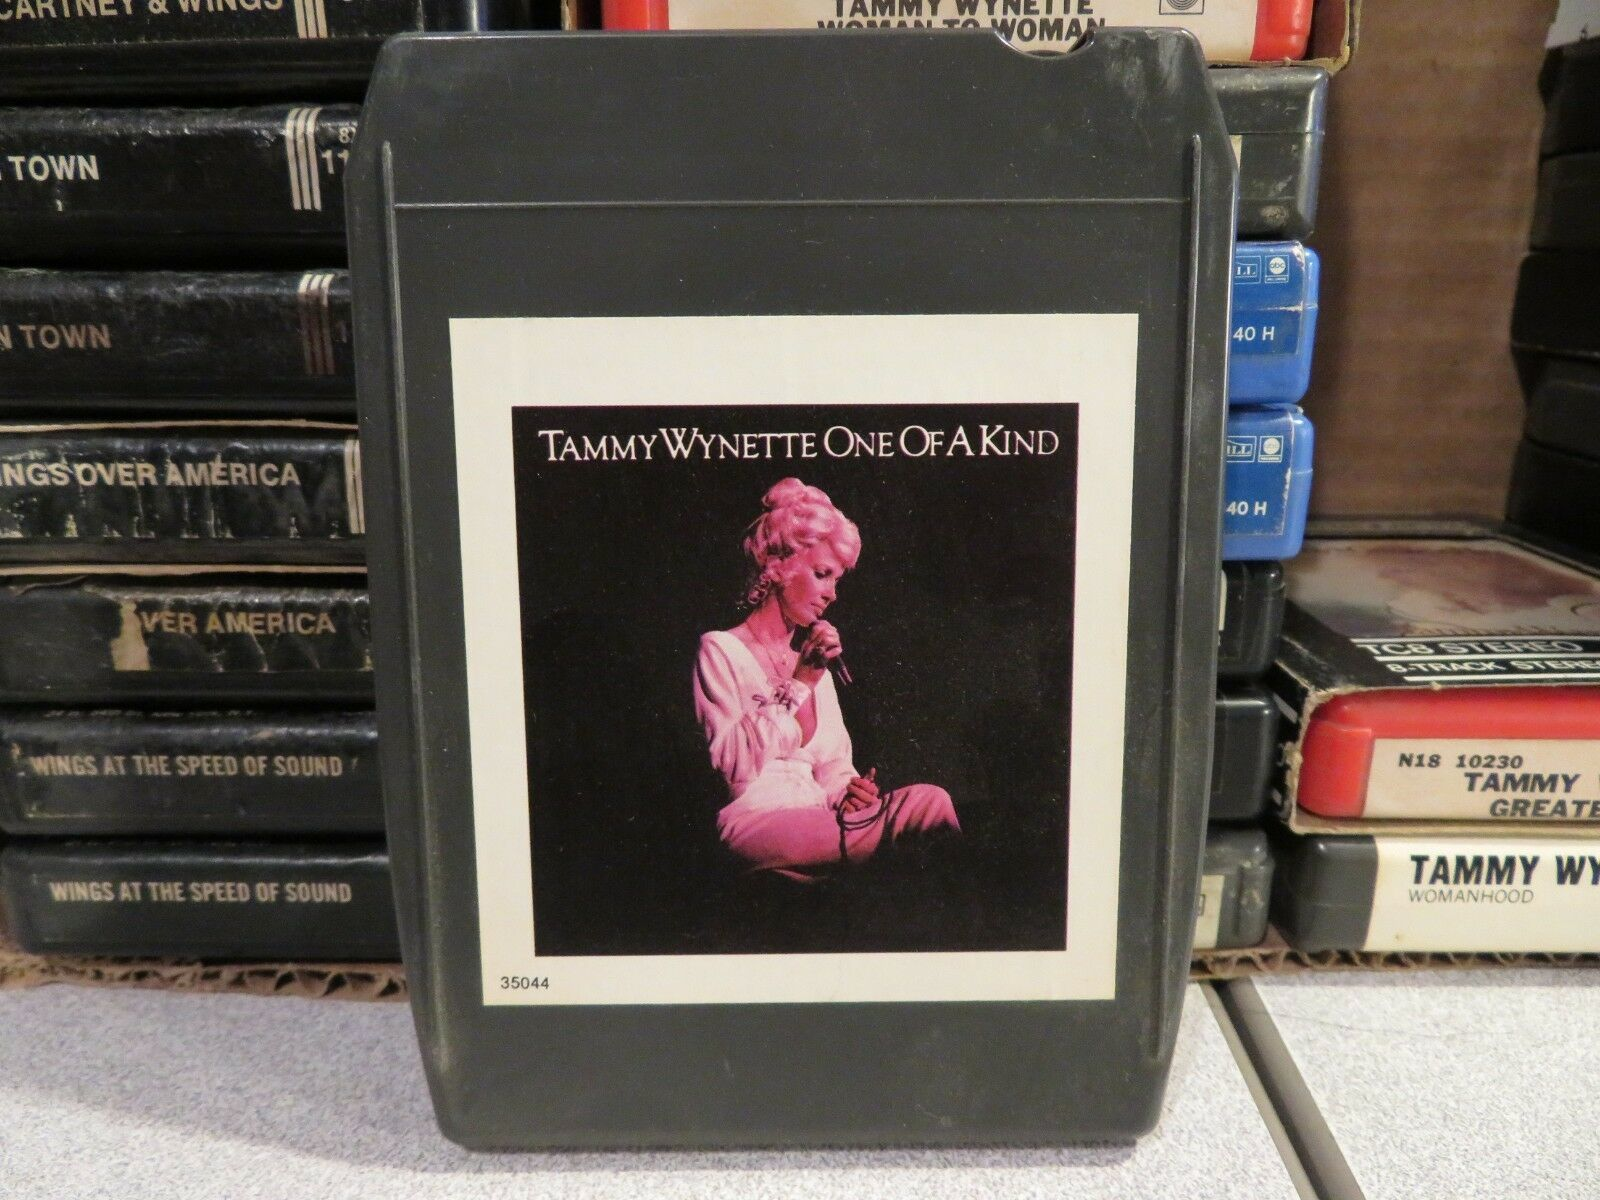 Primary image for TAMMY WYNETTE One of A Kind (8-Track Tape)